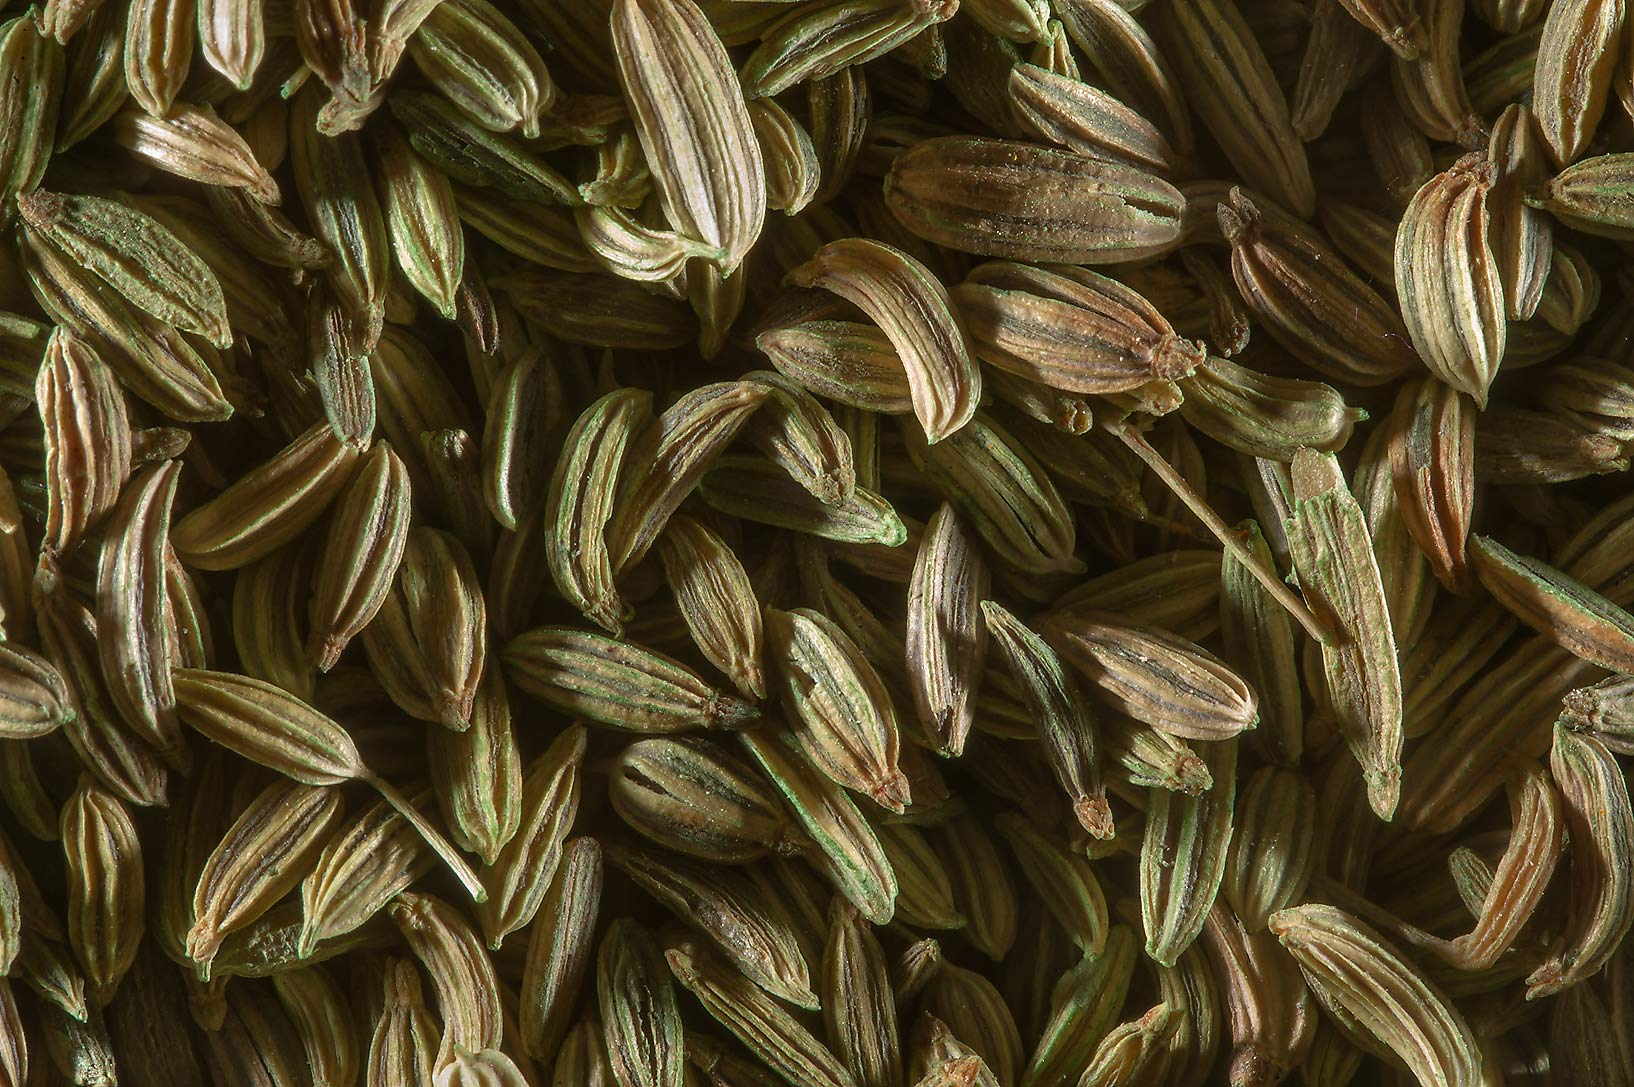 Fennel seeds from India (Foeniculum vulgare) for...Souq Waqif (Old Market). Doha, Qatar